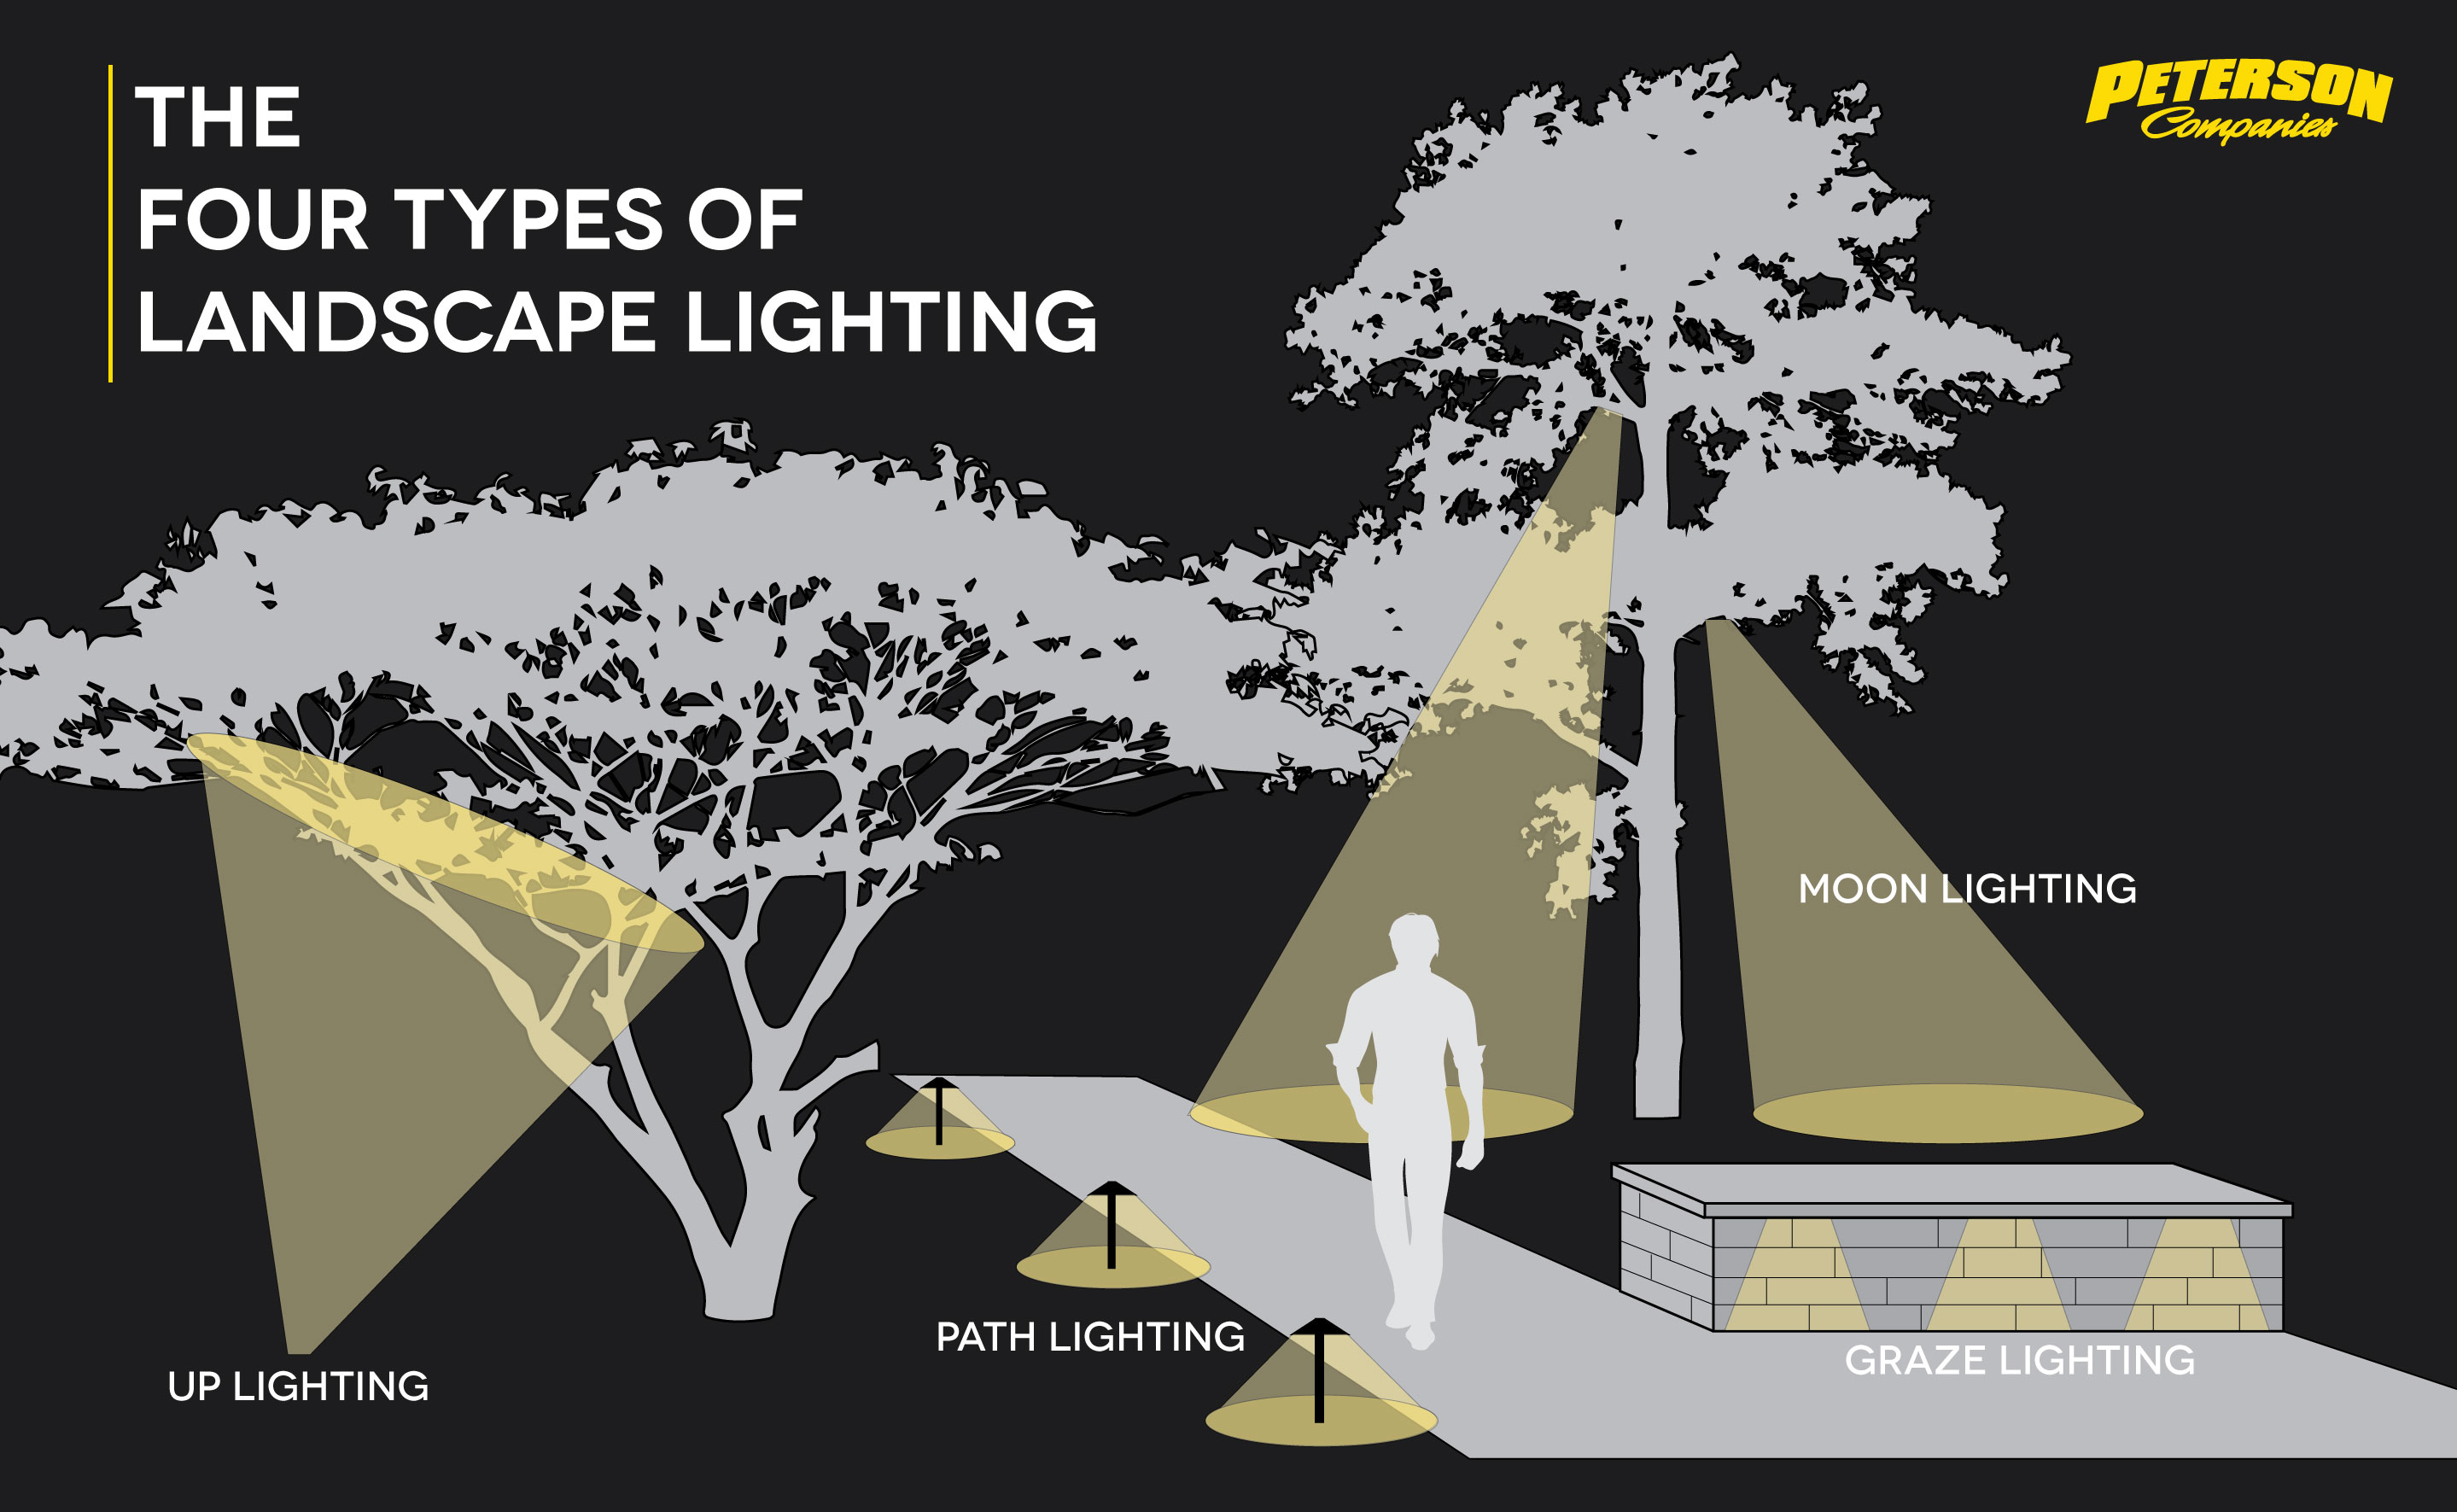 The Four Types Of Landscape Lighting